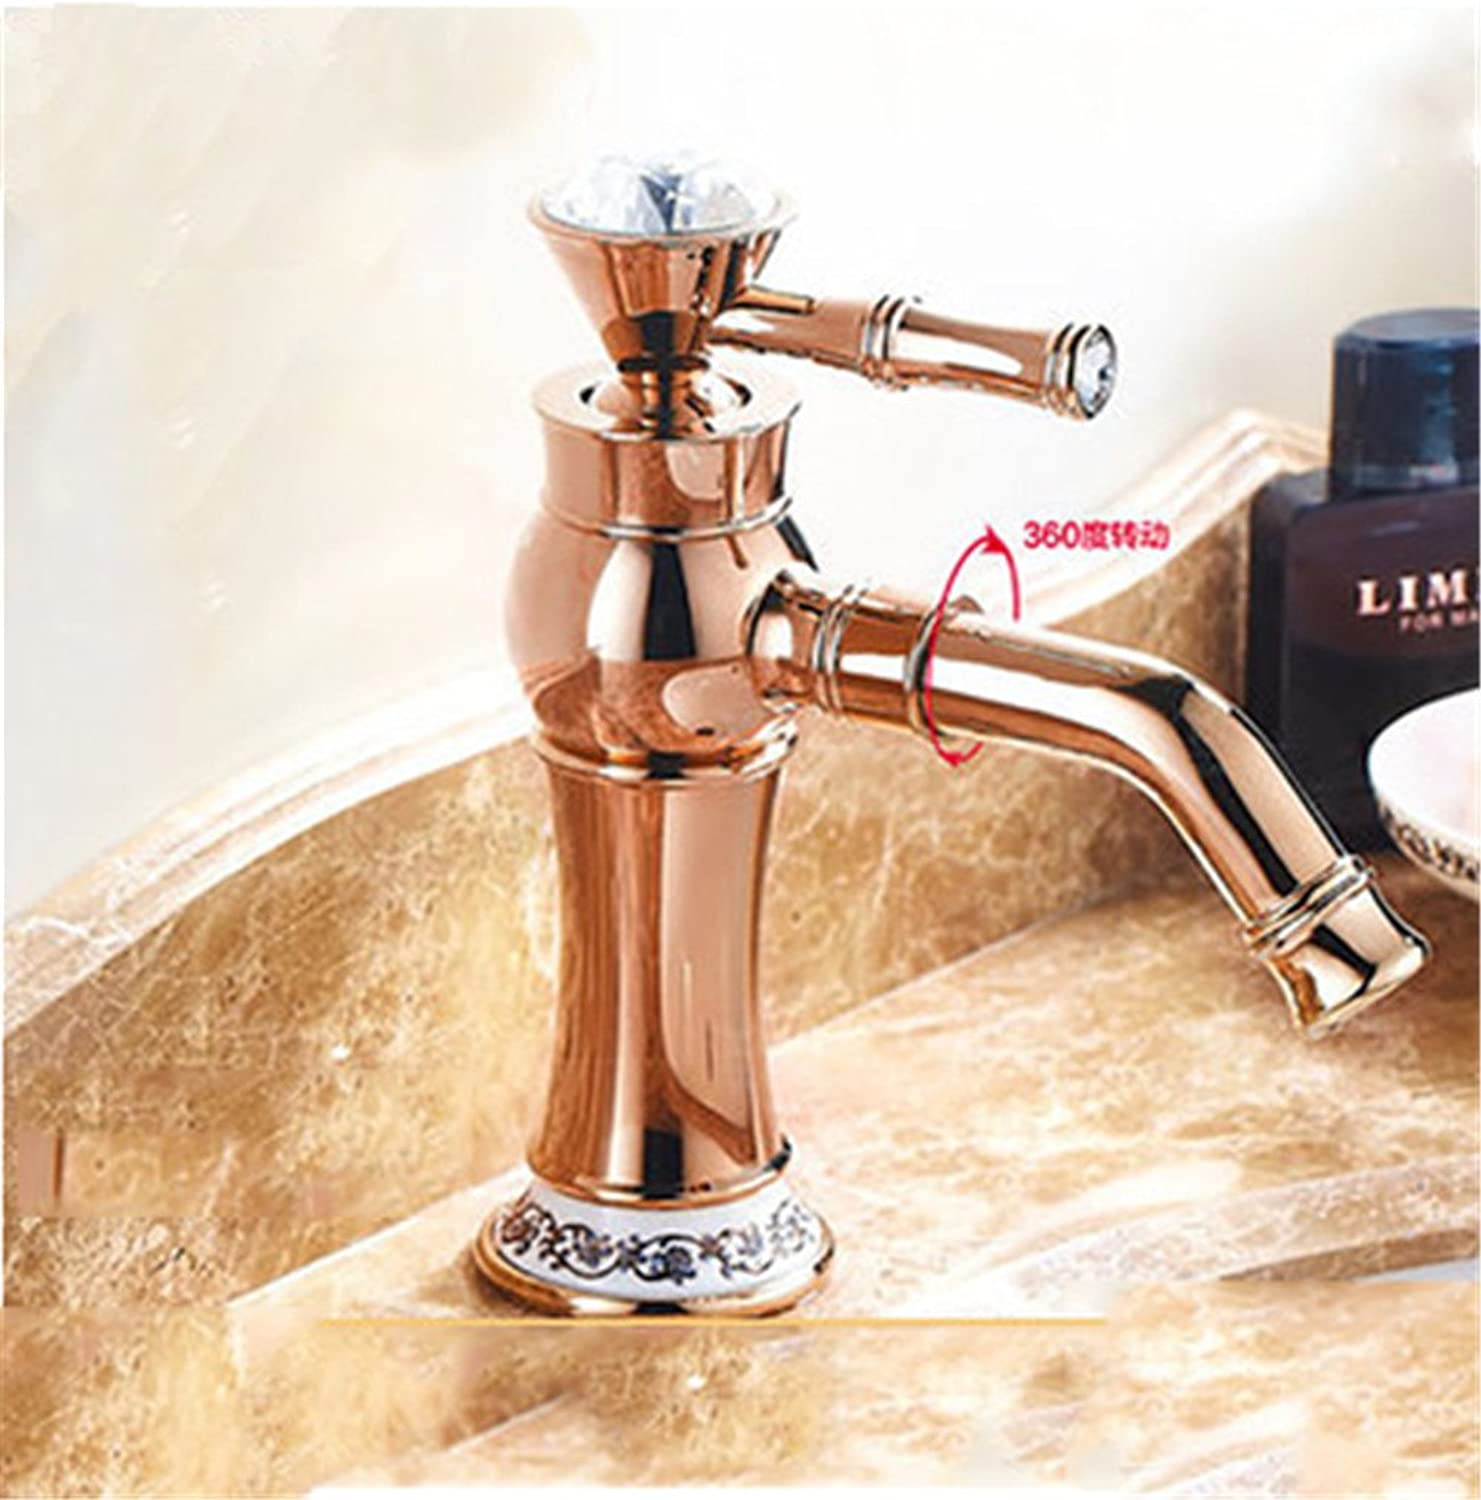 LHbox Basin Mixer Tap Bathroom Sink Faucet Continental antique hot and cold water faucets, copper crystal retro single hole basin mixer,H- base bluee-tiled